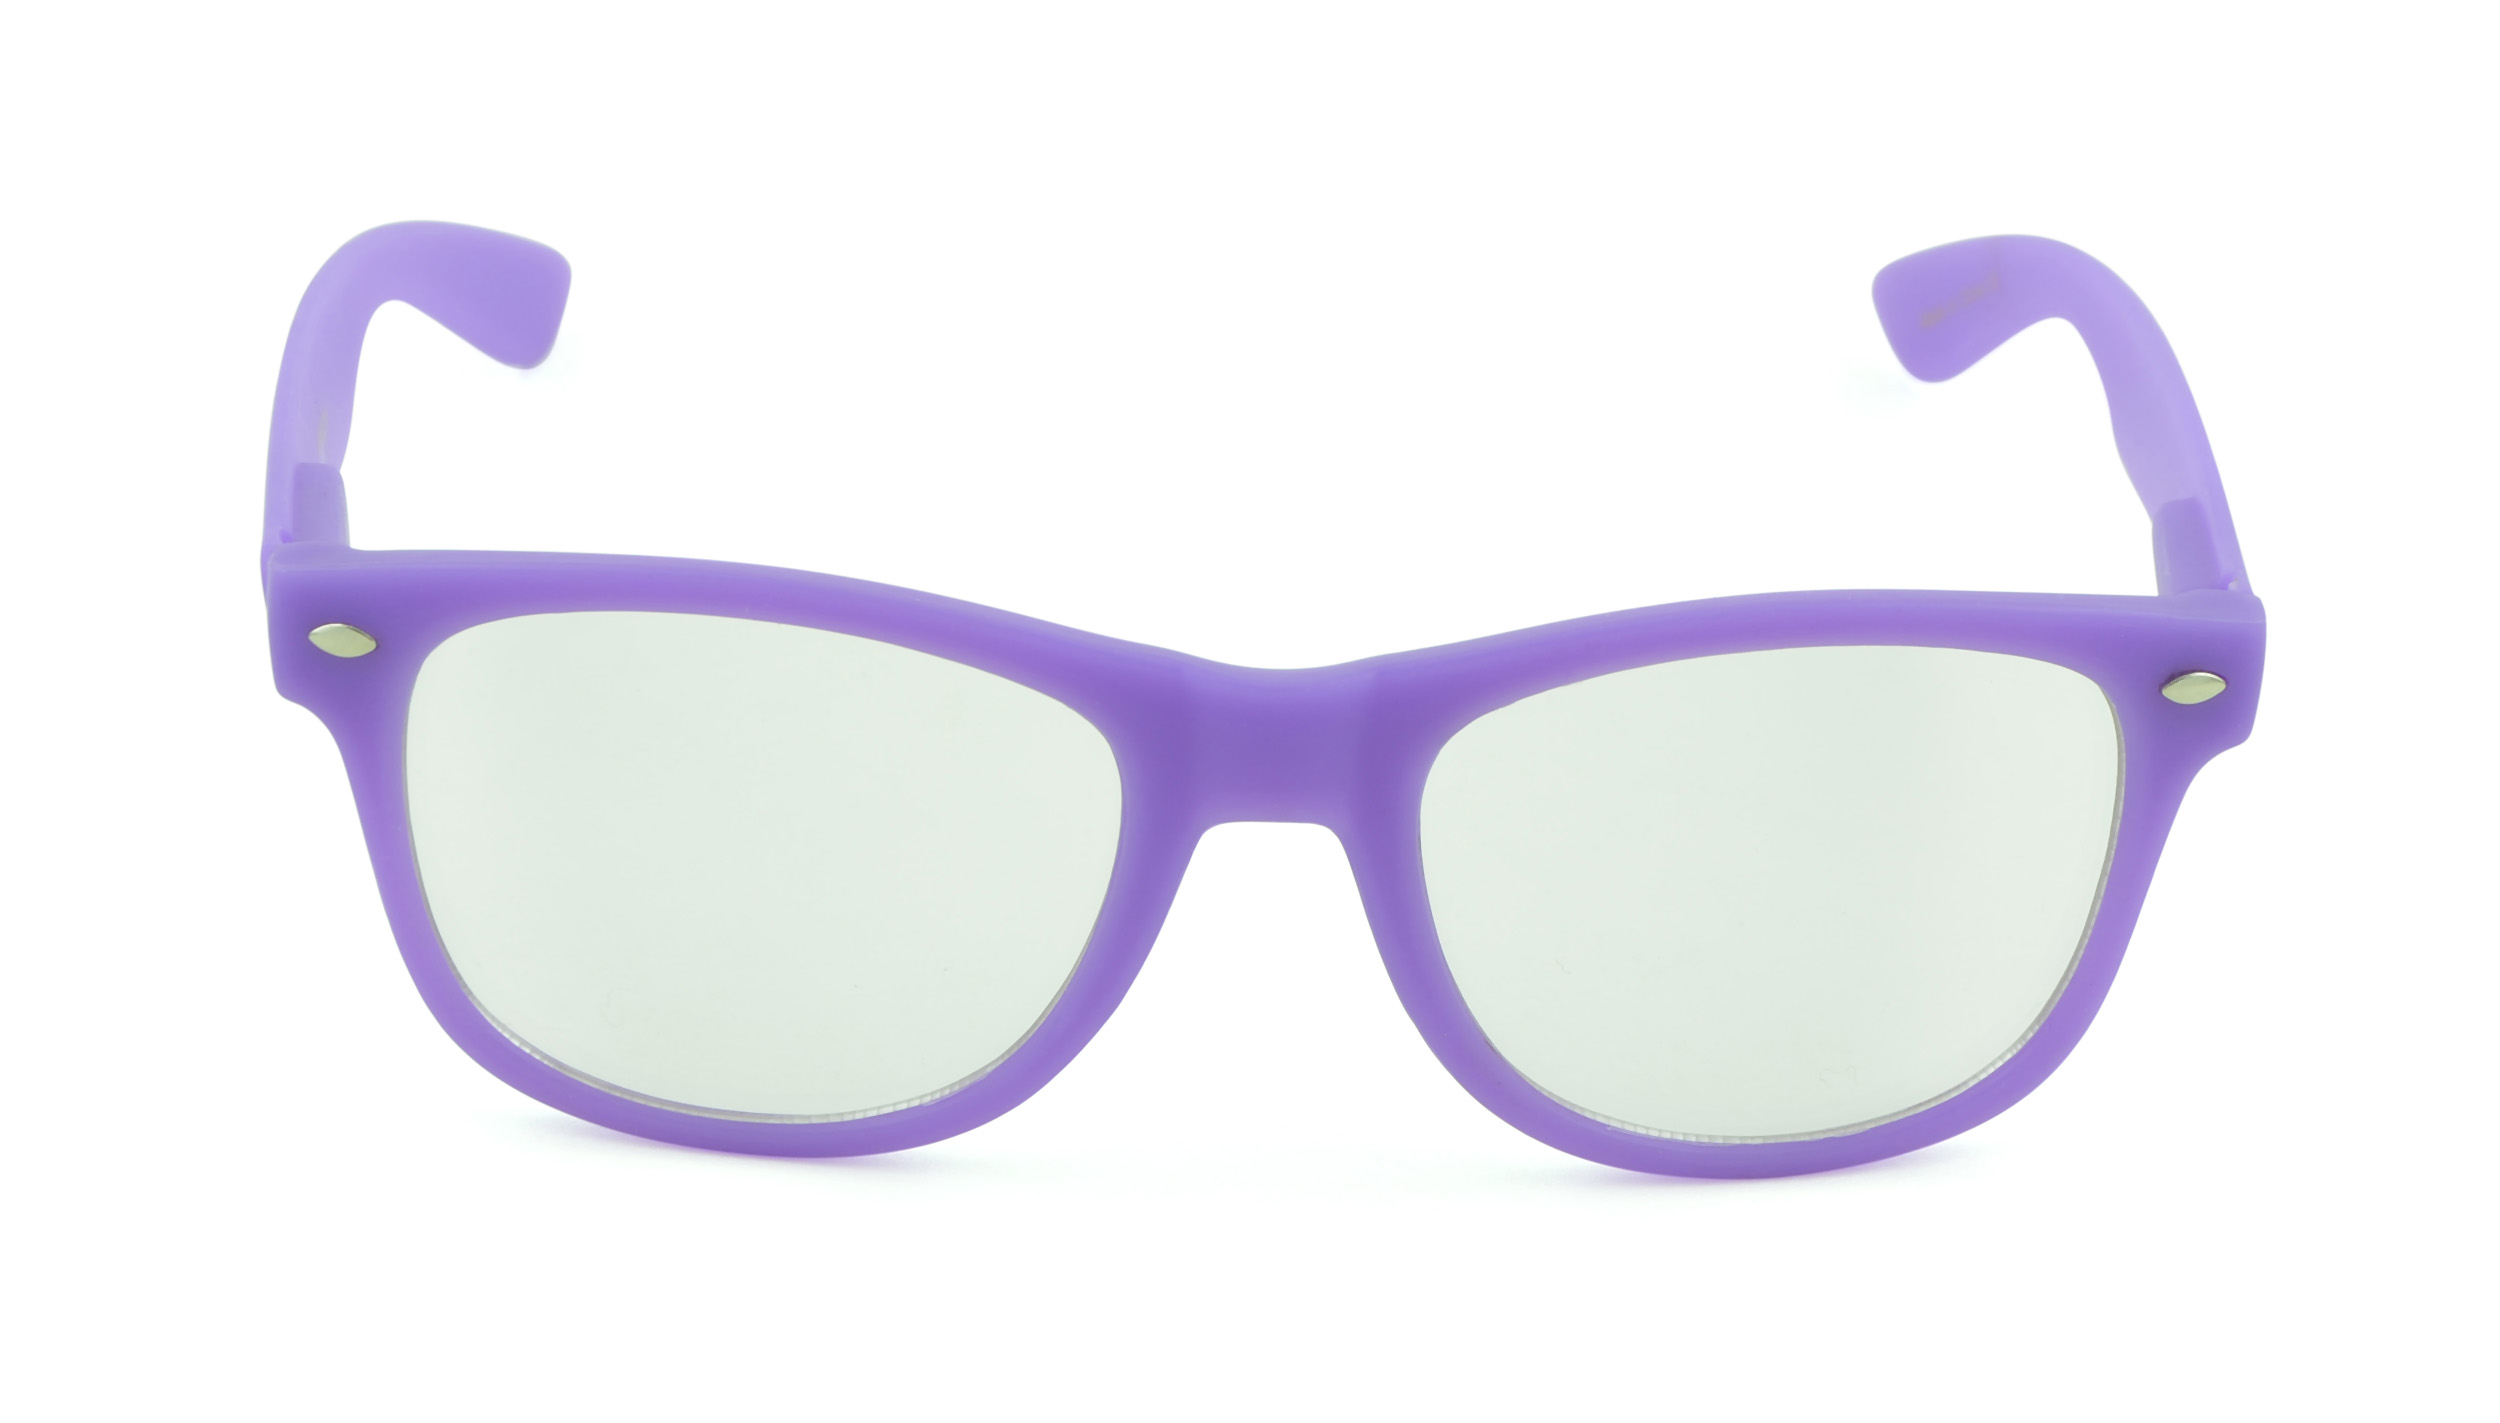 Belle Donne - Unisex Cool Rave Style Glow in the Dark Sunglasses- Purple